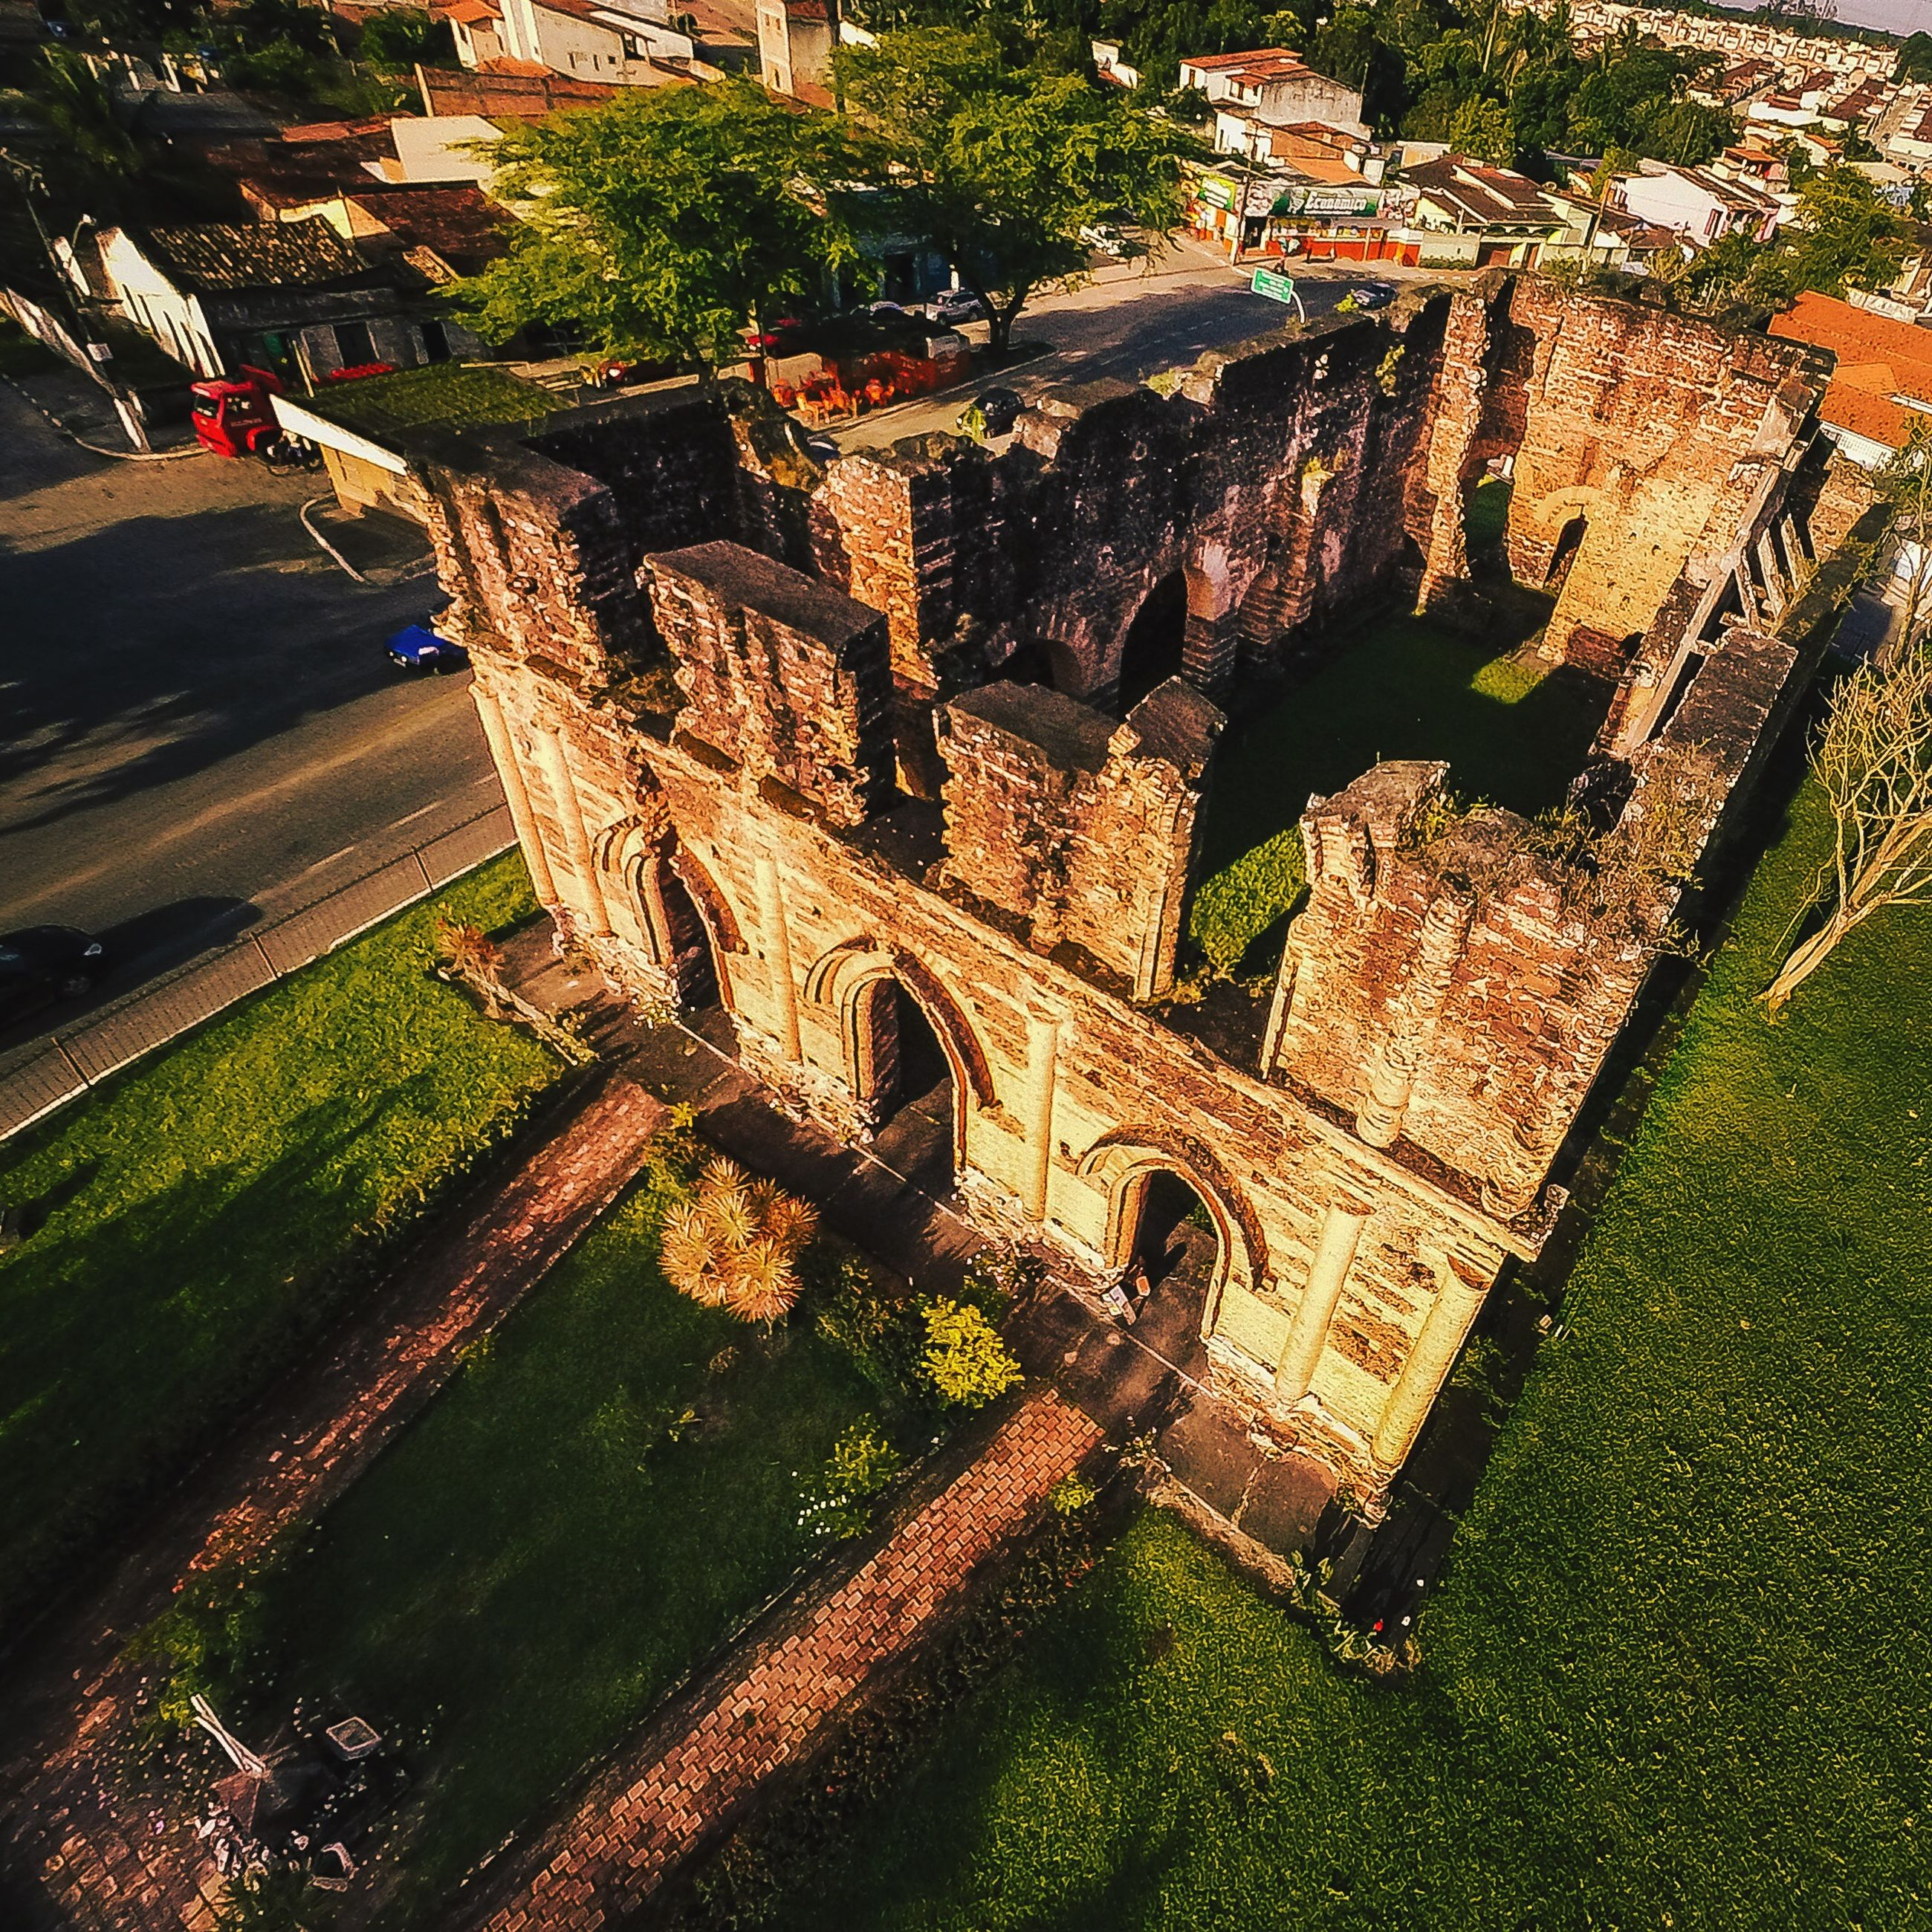 architecture, built structure, building exterior, history, grass, tree, high angle view, ancient, travel destinations, old, old ruin, the past, sunlight, day, outdoors, green color, travel, growth, famous place, plant